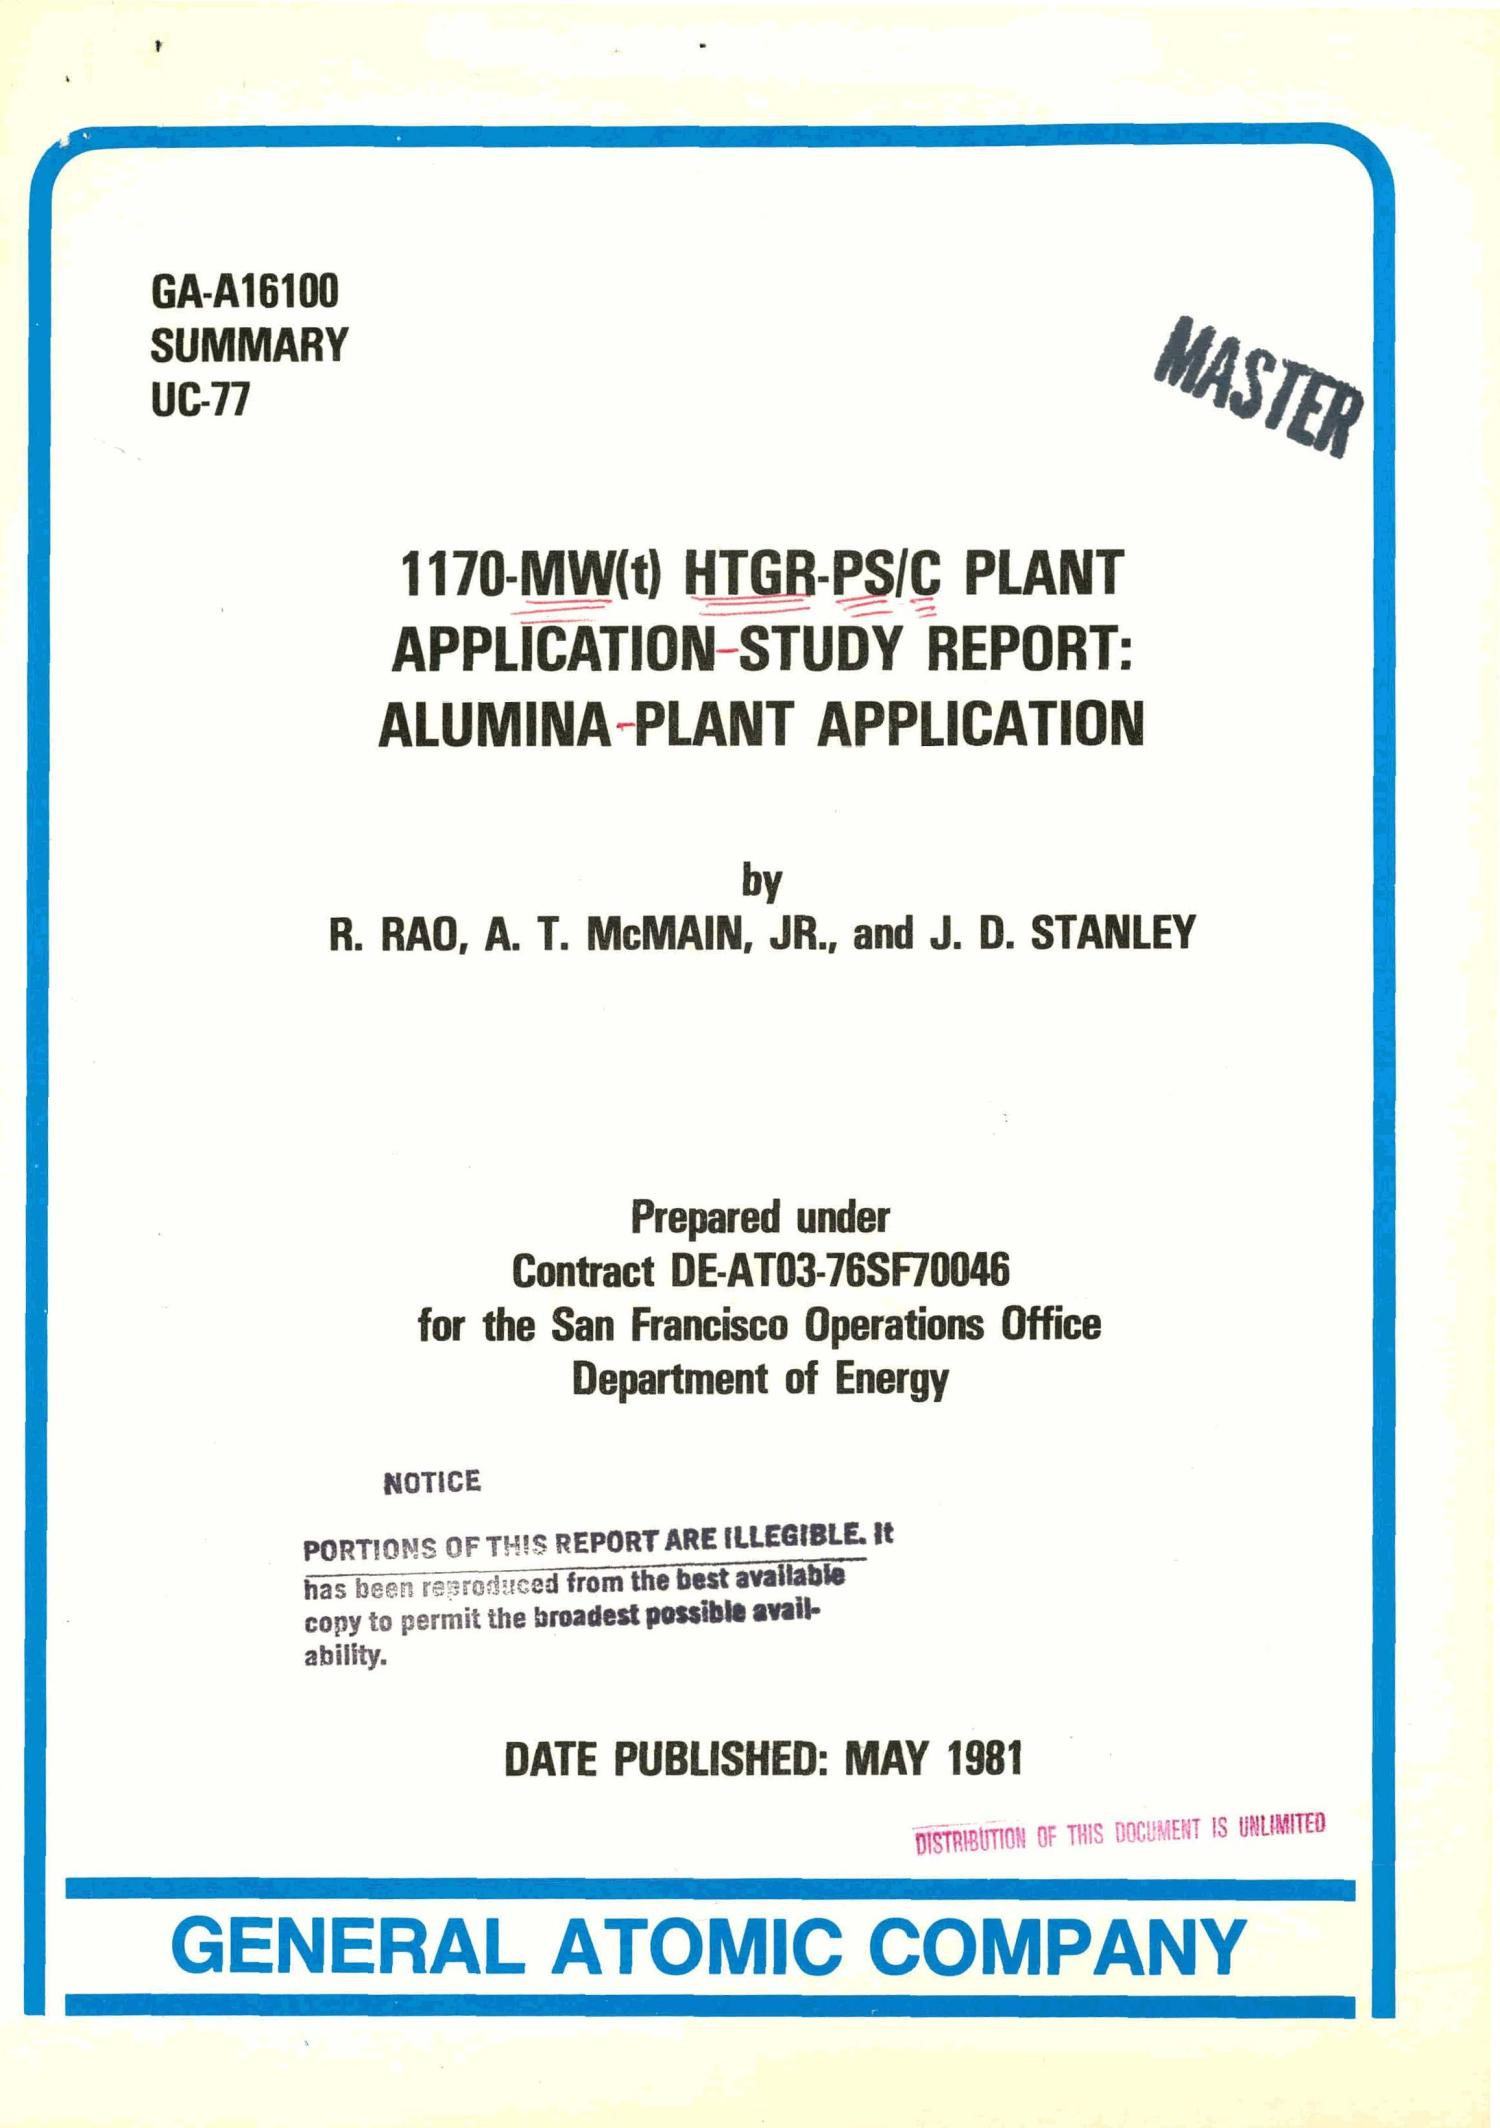 1170-MW(t) HTGR-PS/C plant application-study report: alumina-plant application                                                                                                      [Sequence #]: 1 of 15